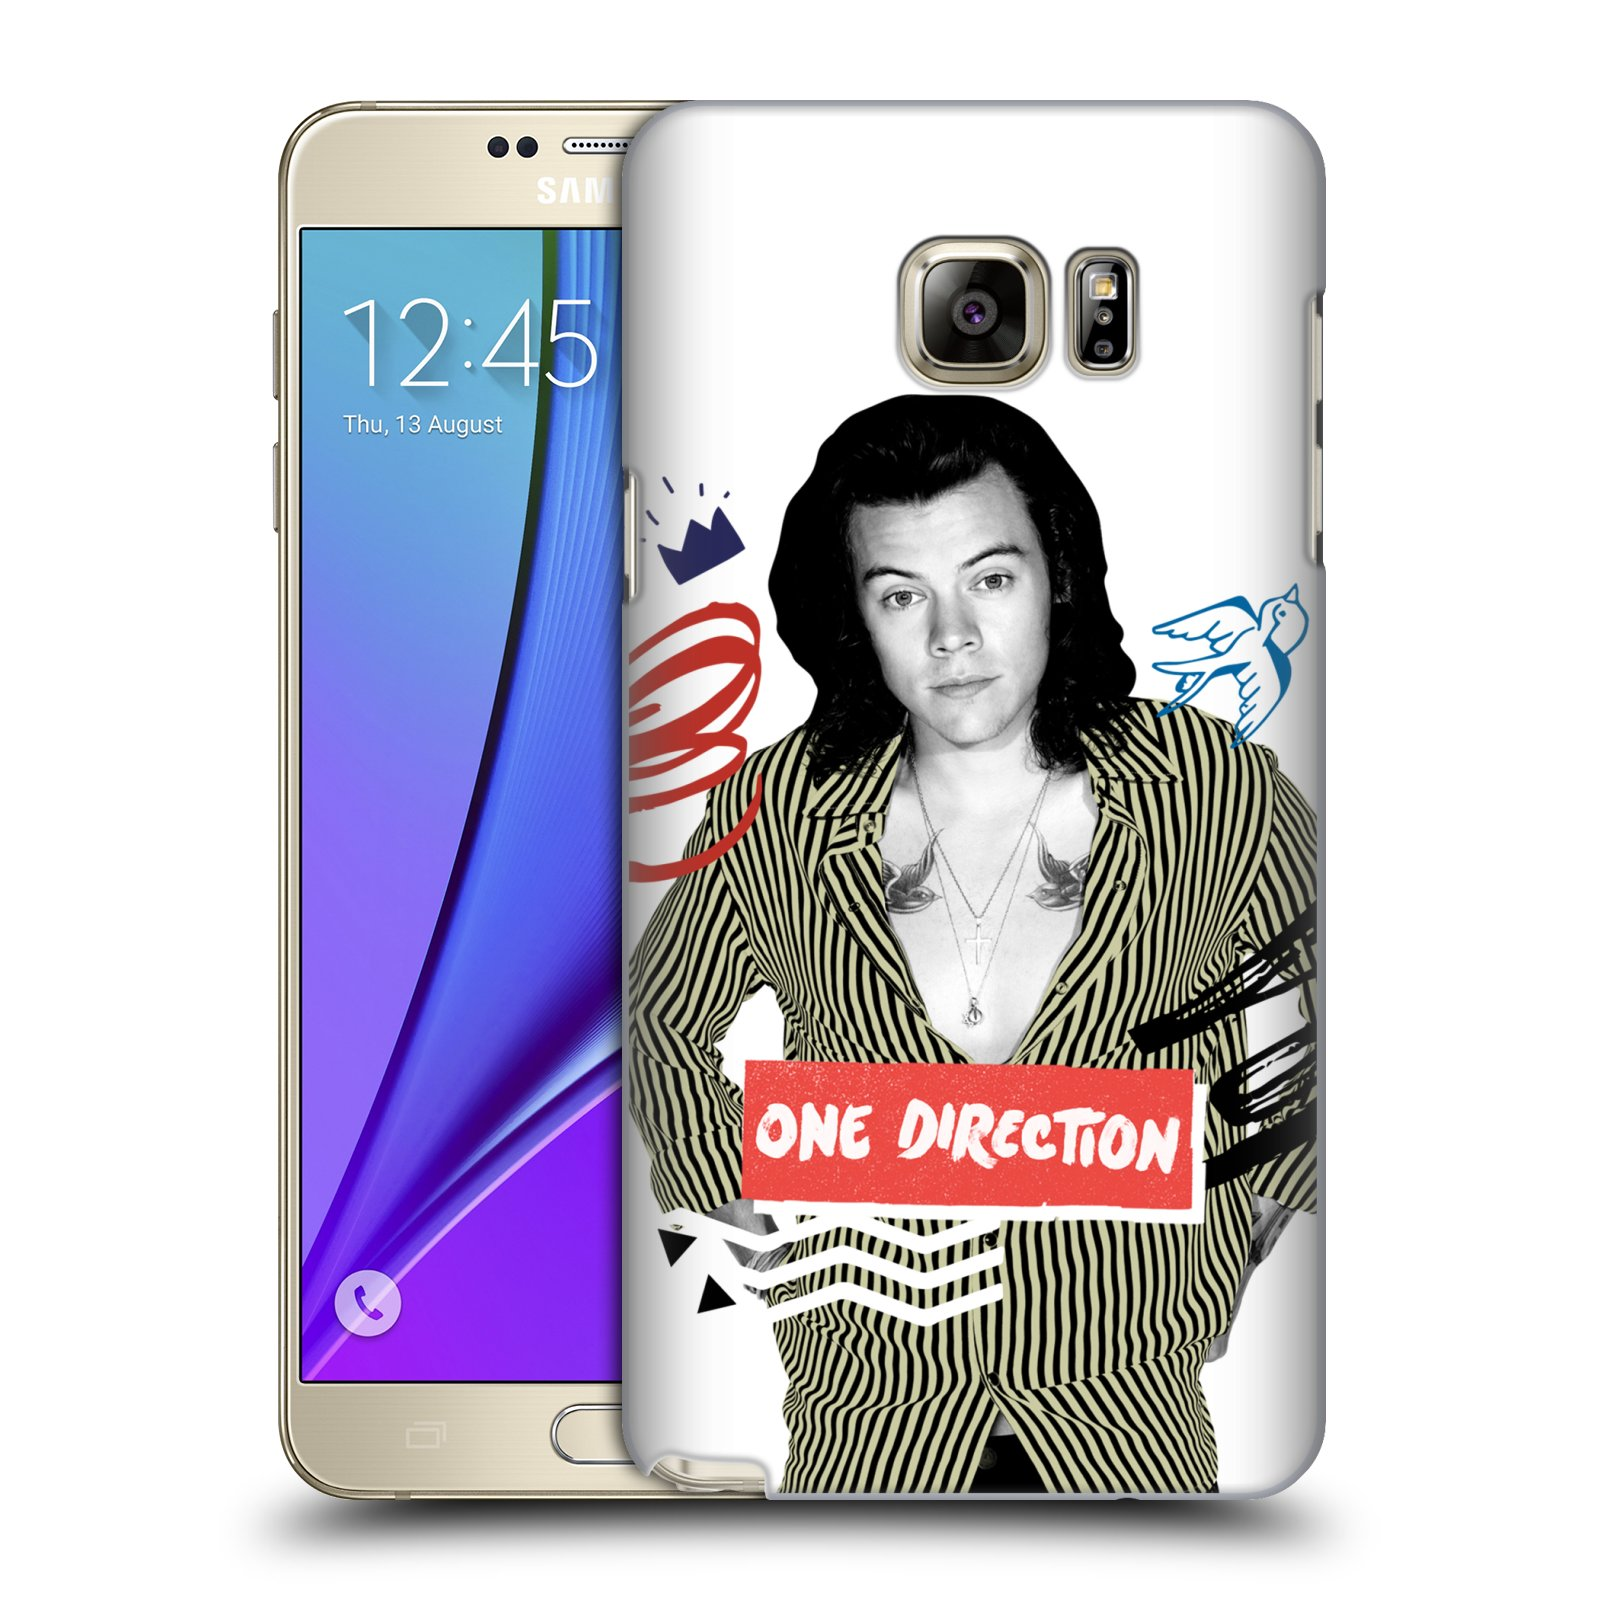 OFFICIAL ONE DIRECTION DOODLE X GRAFFITI HARD BACK CASE FOR SAMSUNG PHONES 1